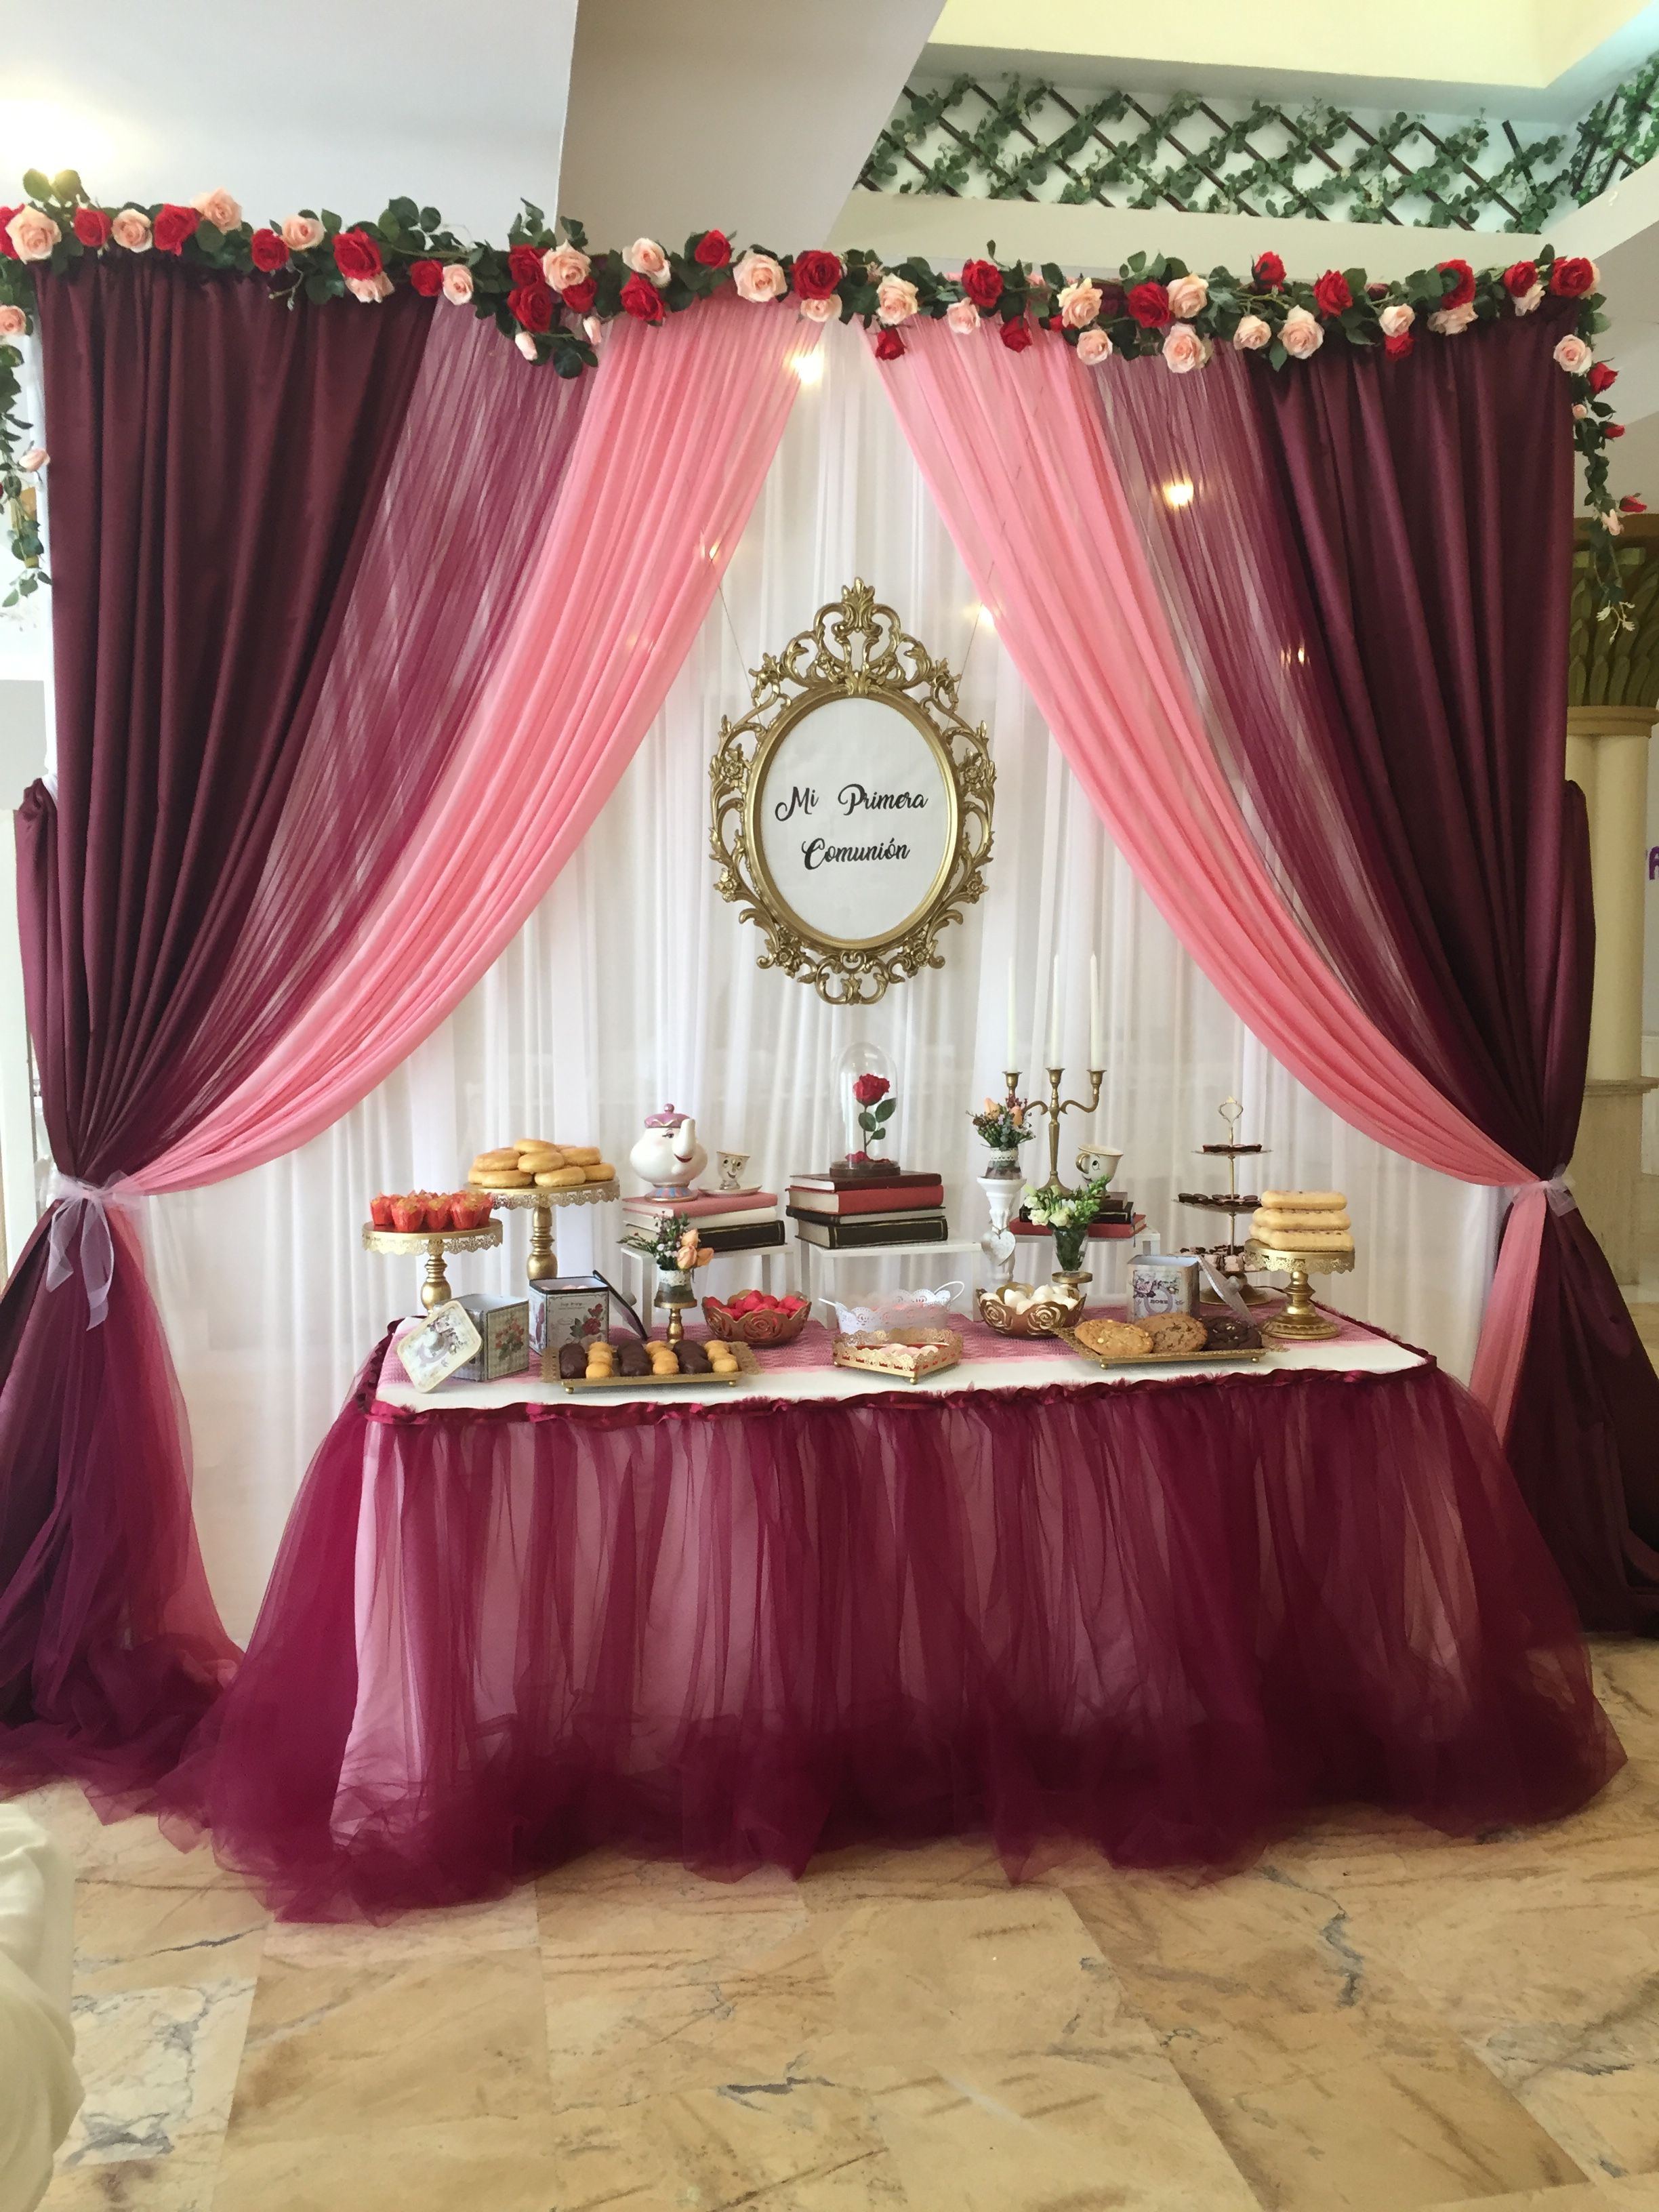 Simple Stage Decoration Ideas For Baby Shower Valoblogi Com